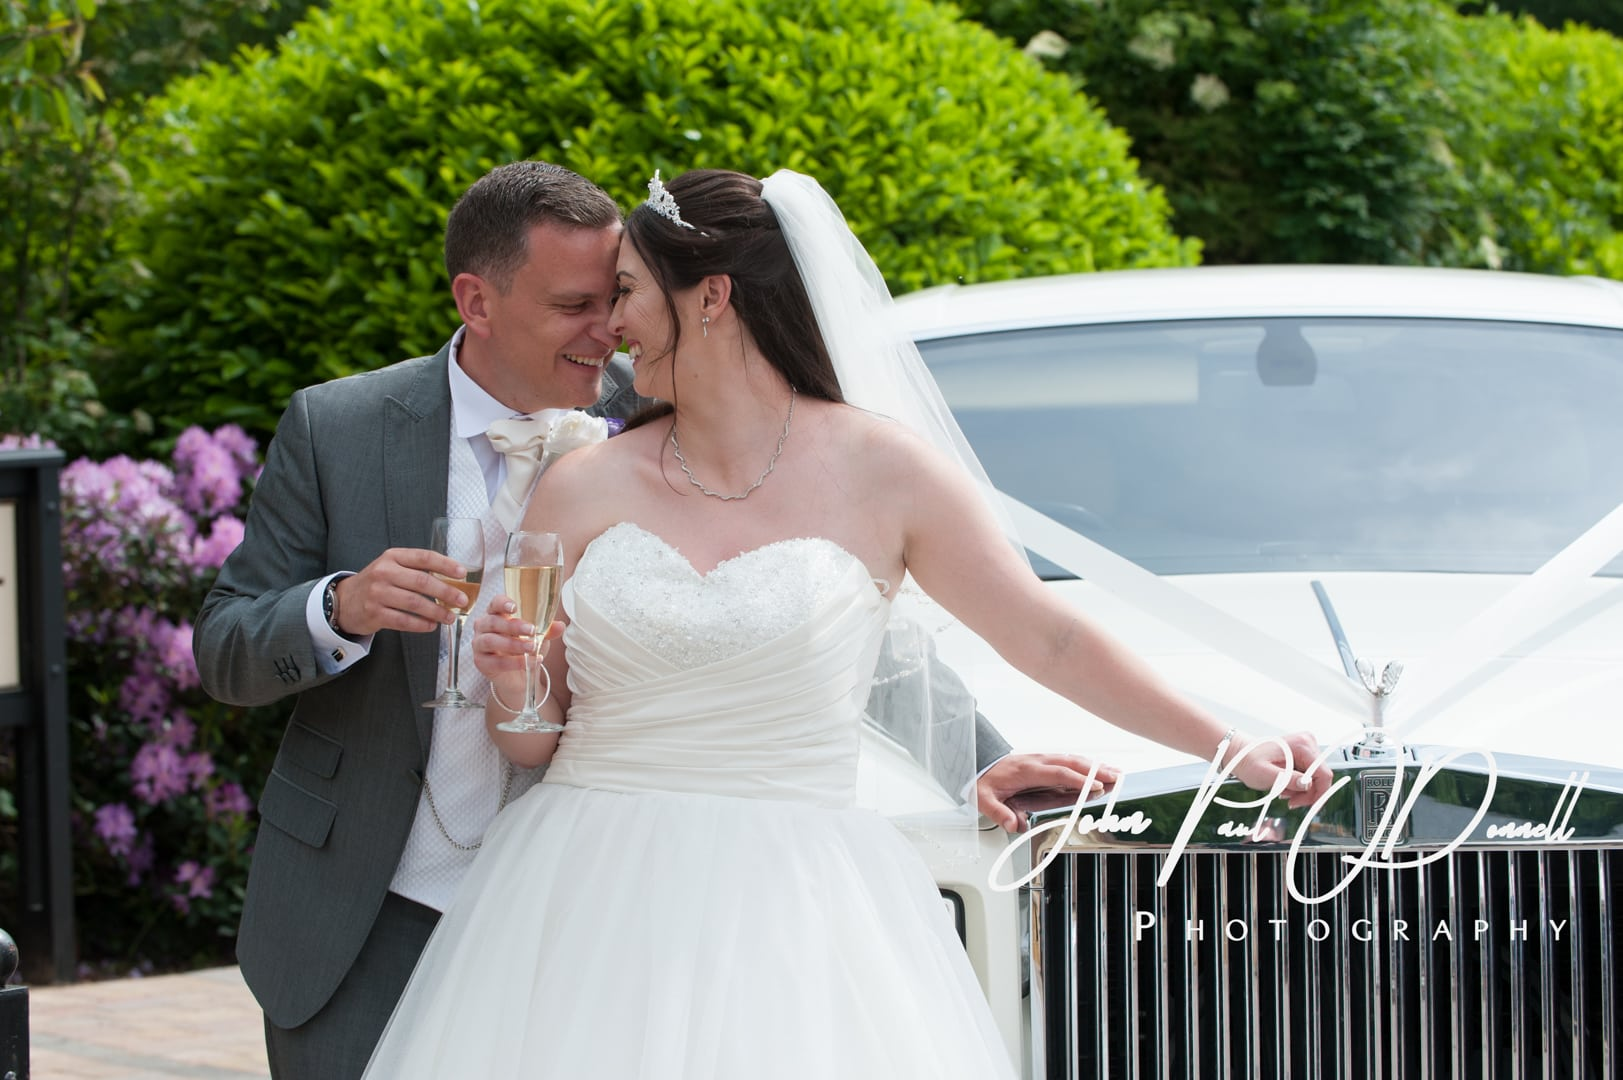 Claire and Stuarts wedding at Tewinbury Farm Herts